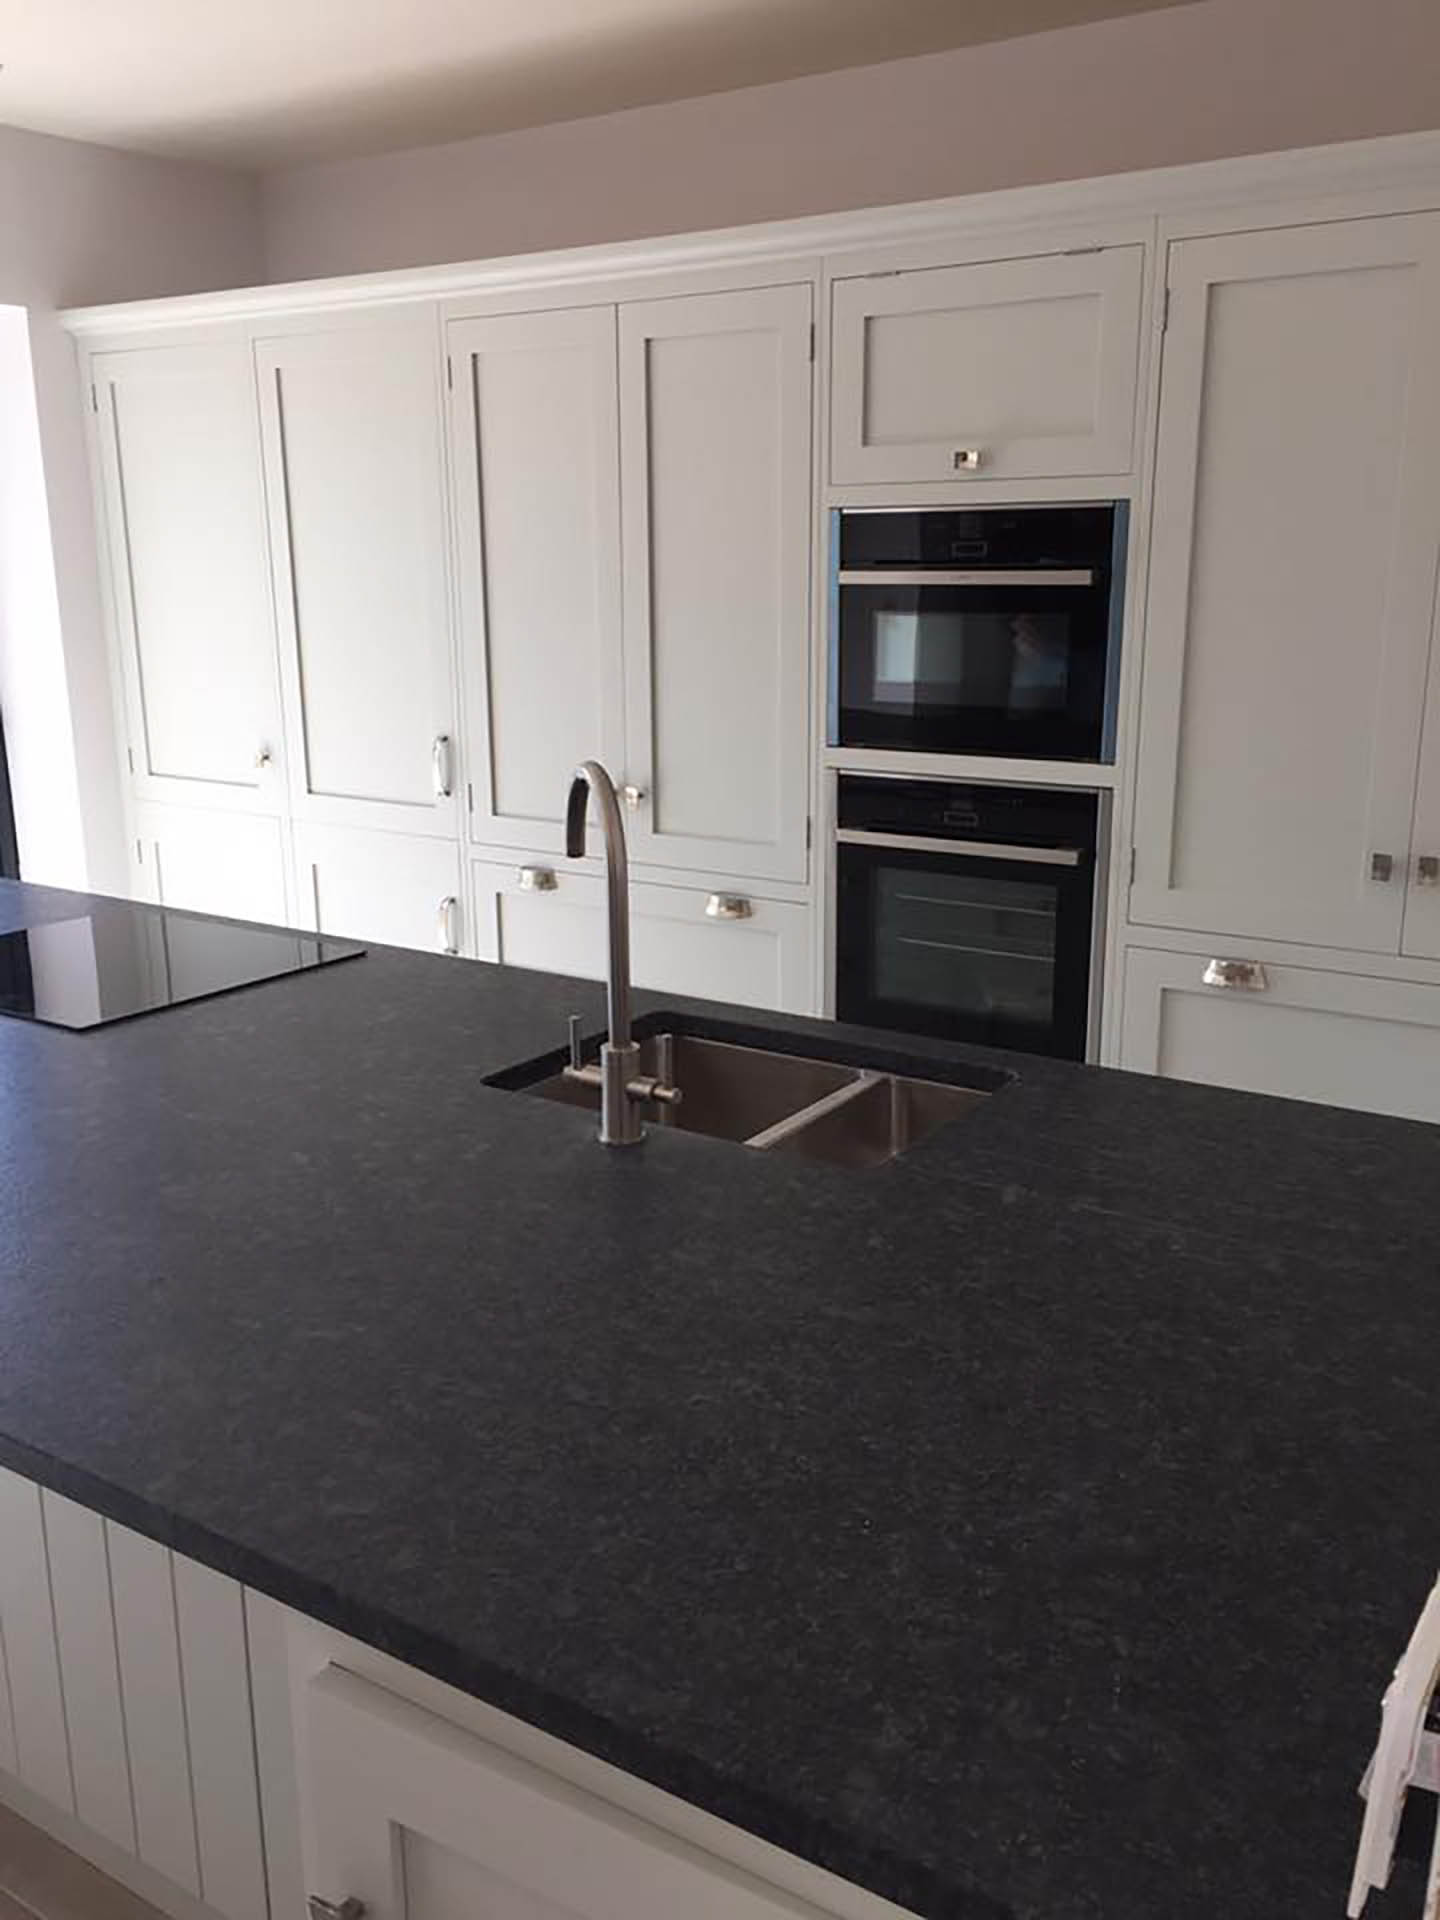 A large, granite topped kitchen surface.